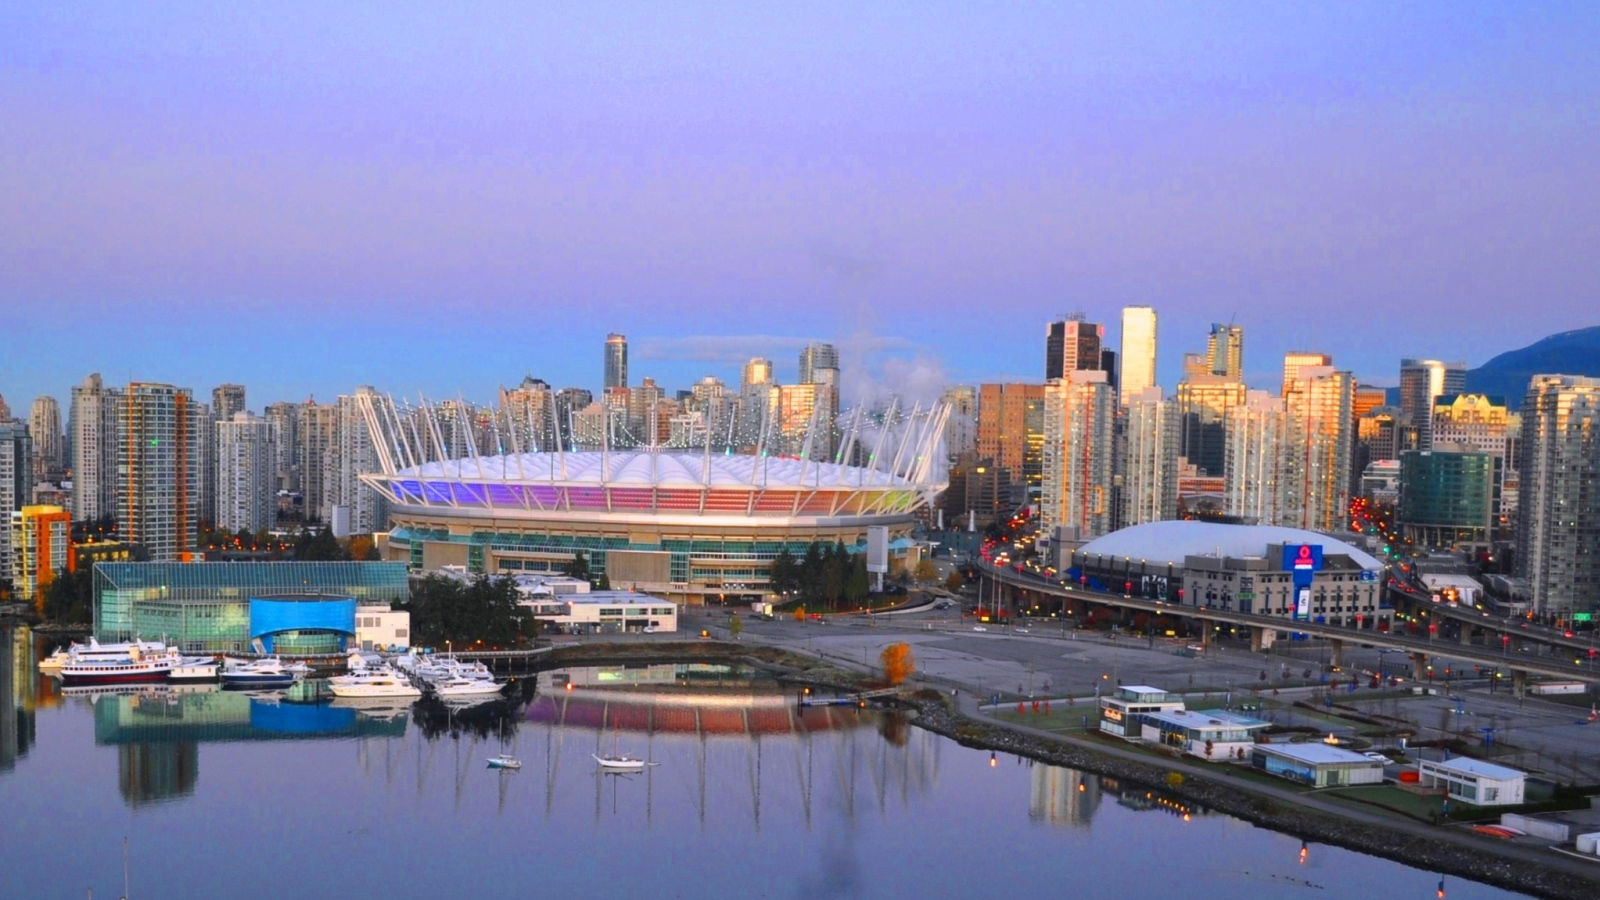 Hotels Near Rogers Arena - Vancouver Skyline with Rogers Arena